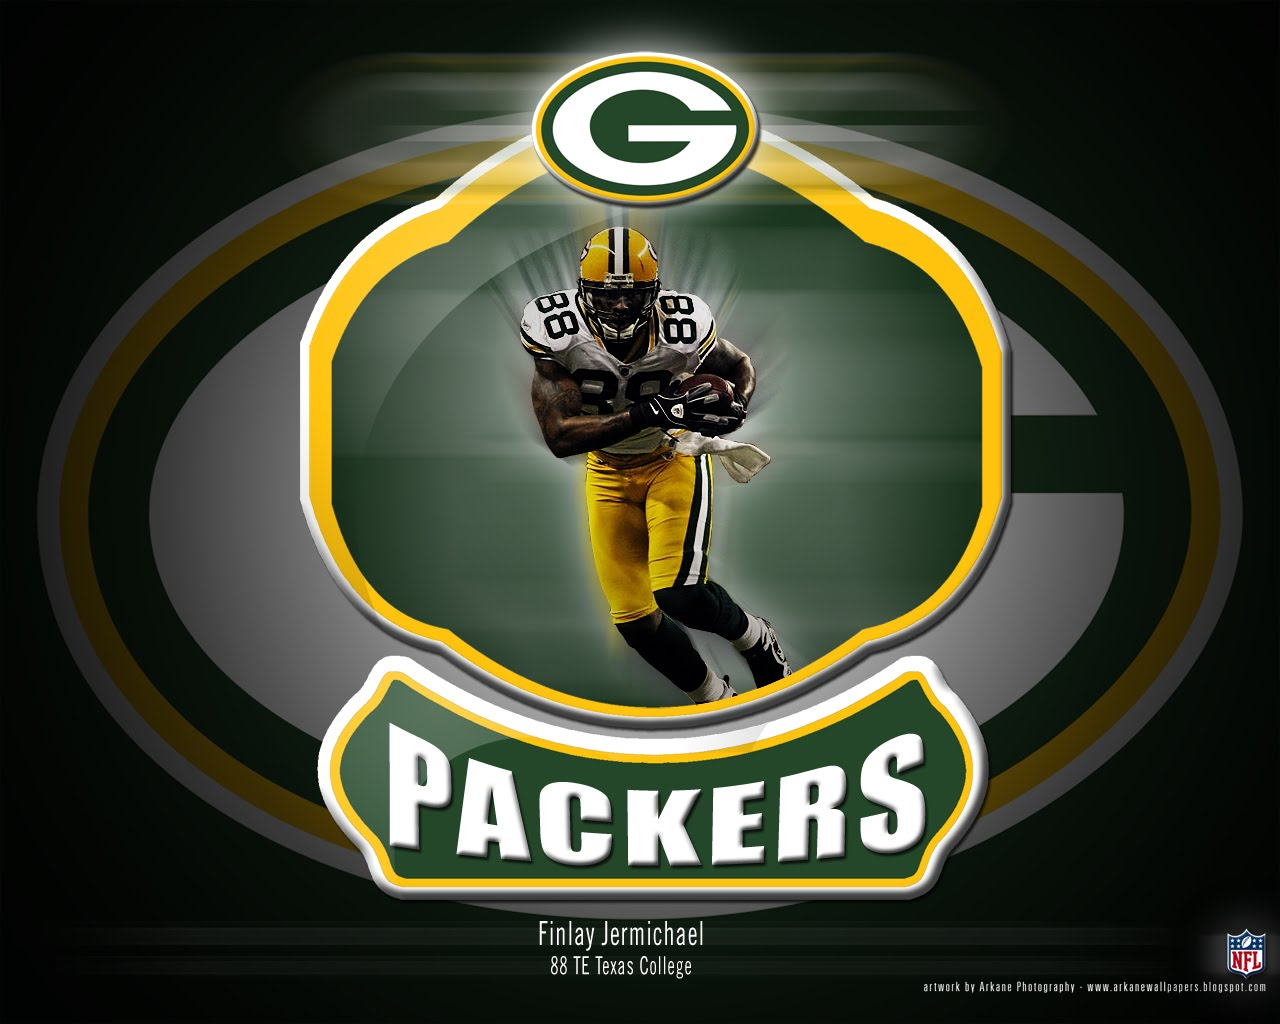 Green Bay Packer Wallpaper: Friends Corner: Greeen Bay Packers, Bay Packers, Packers